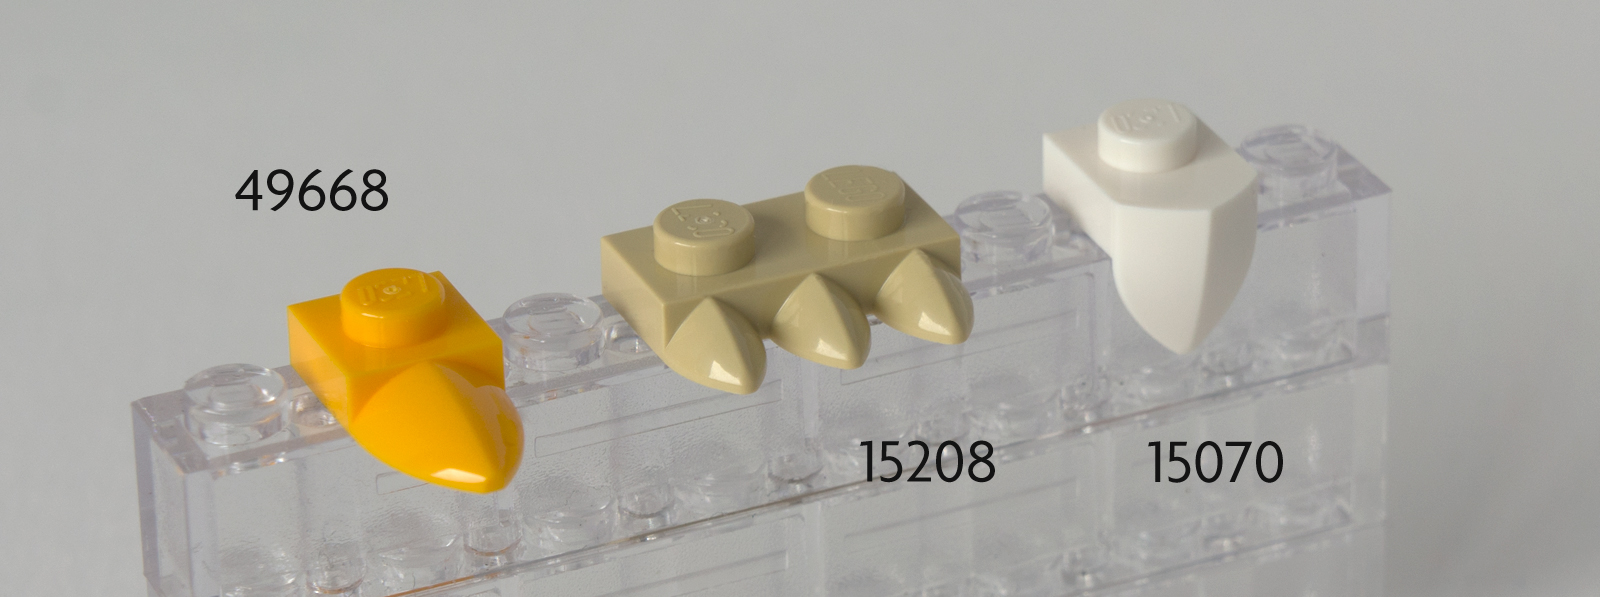 NEW LEGO Part Number 15208 in a choice of 2 colours